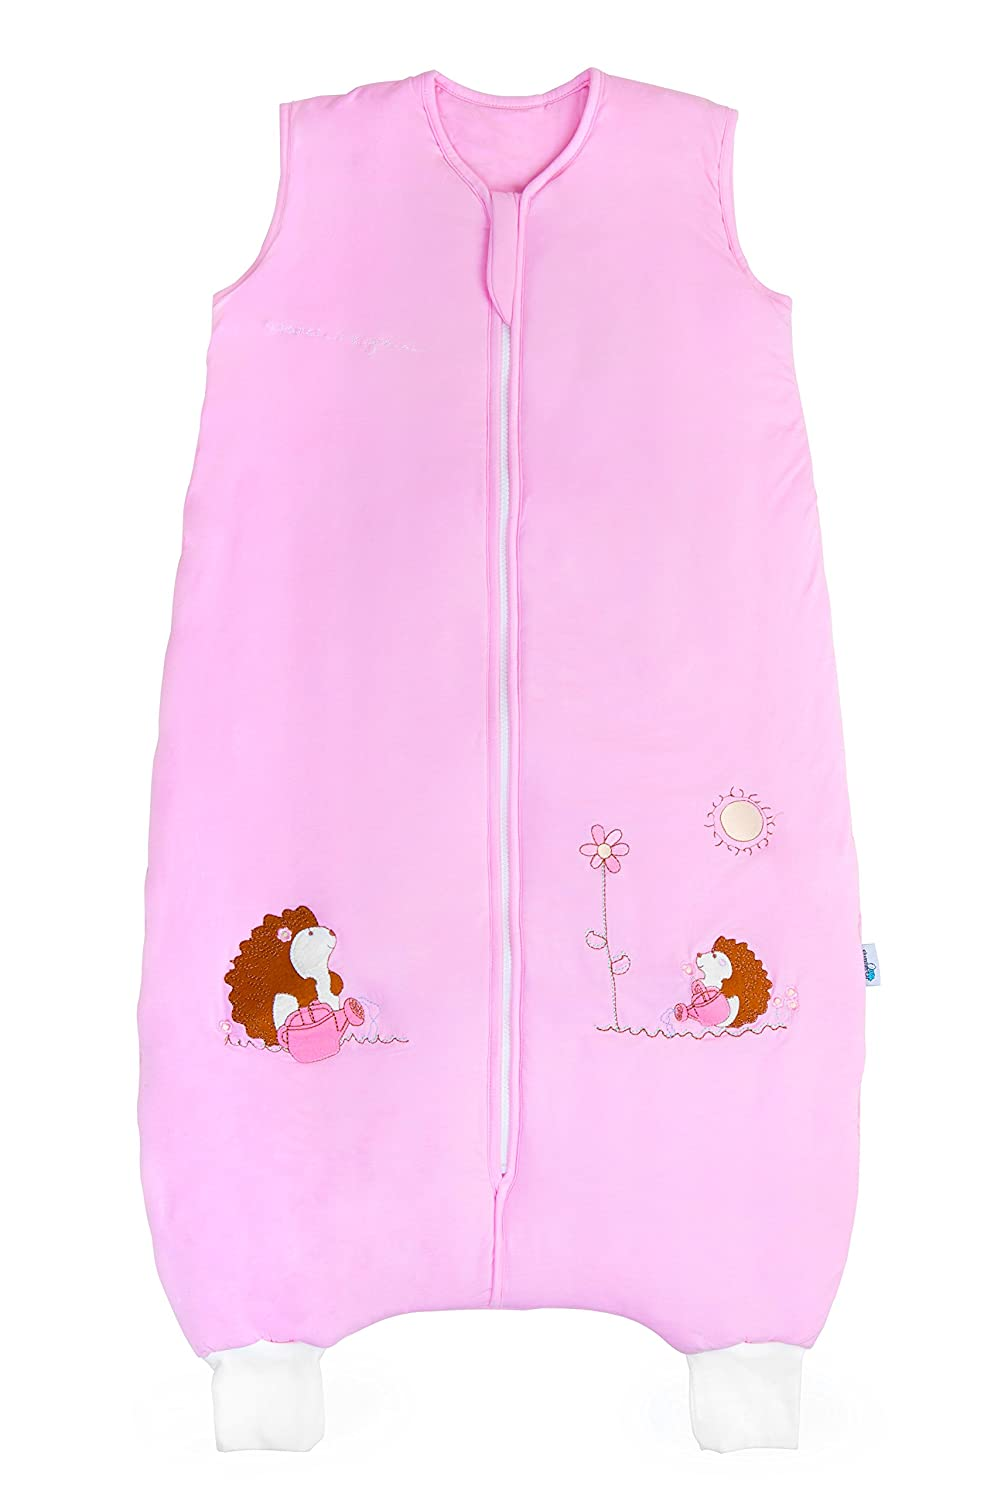 Slumbersac Bamboo Toddler Summer Sleeping Bag with Feet approx. 1 Tog - Pink Hedgehog - 24-36 months